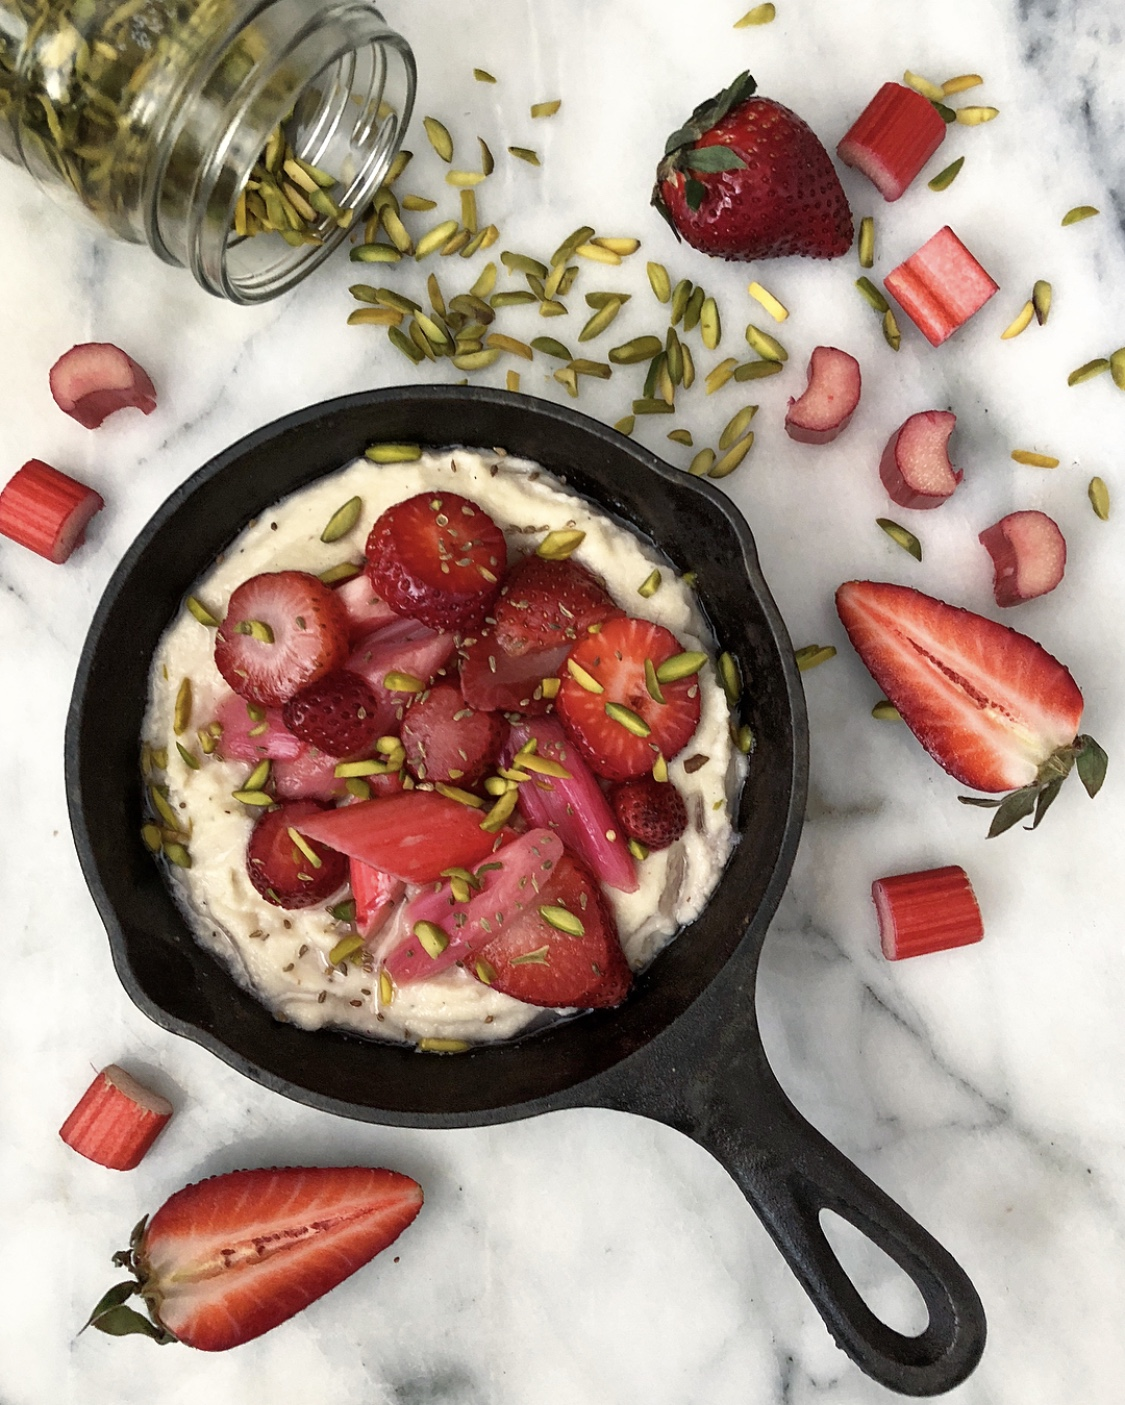 Rhubarb and Almond Grits